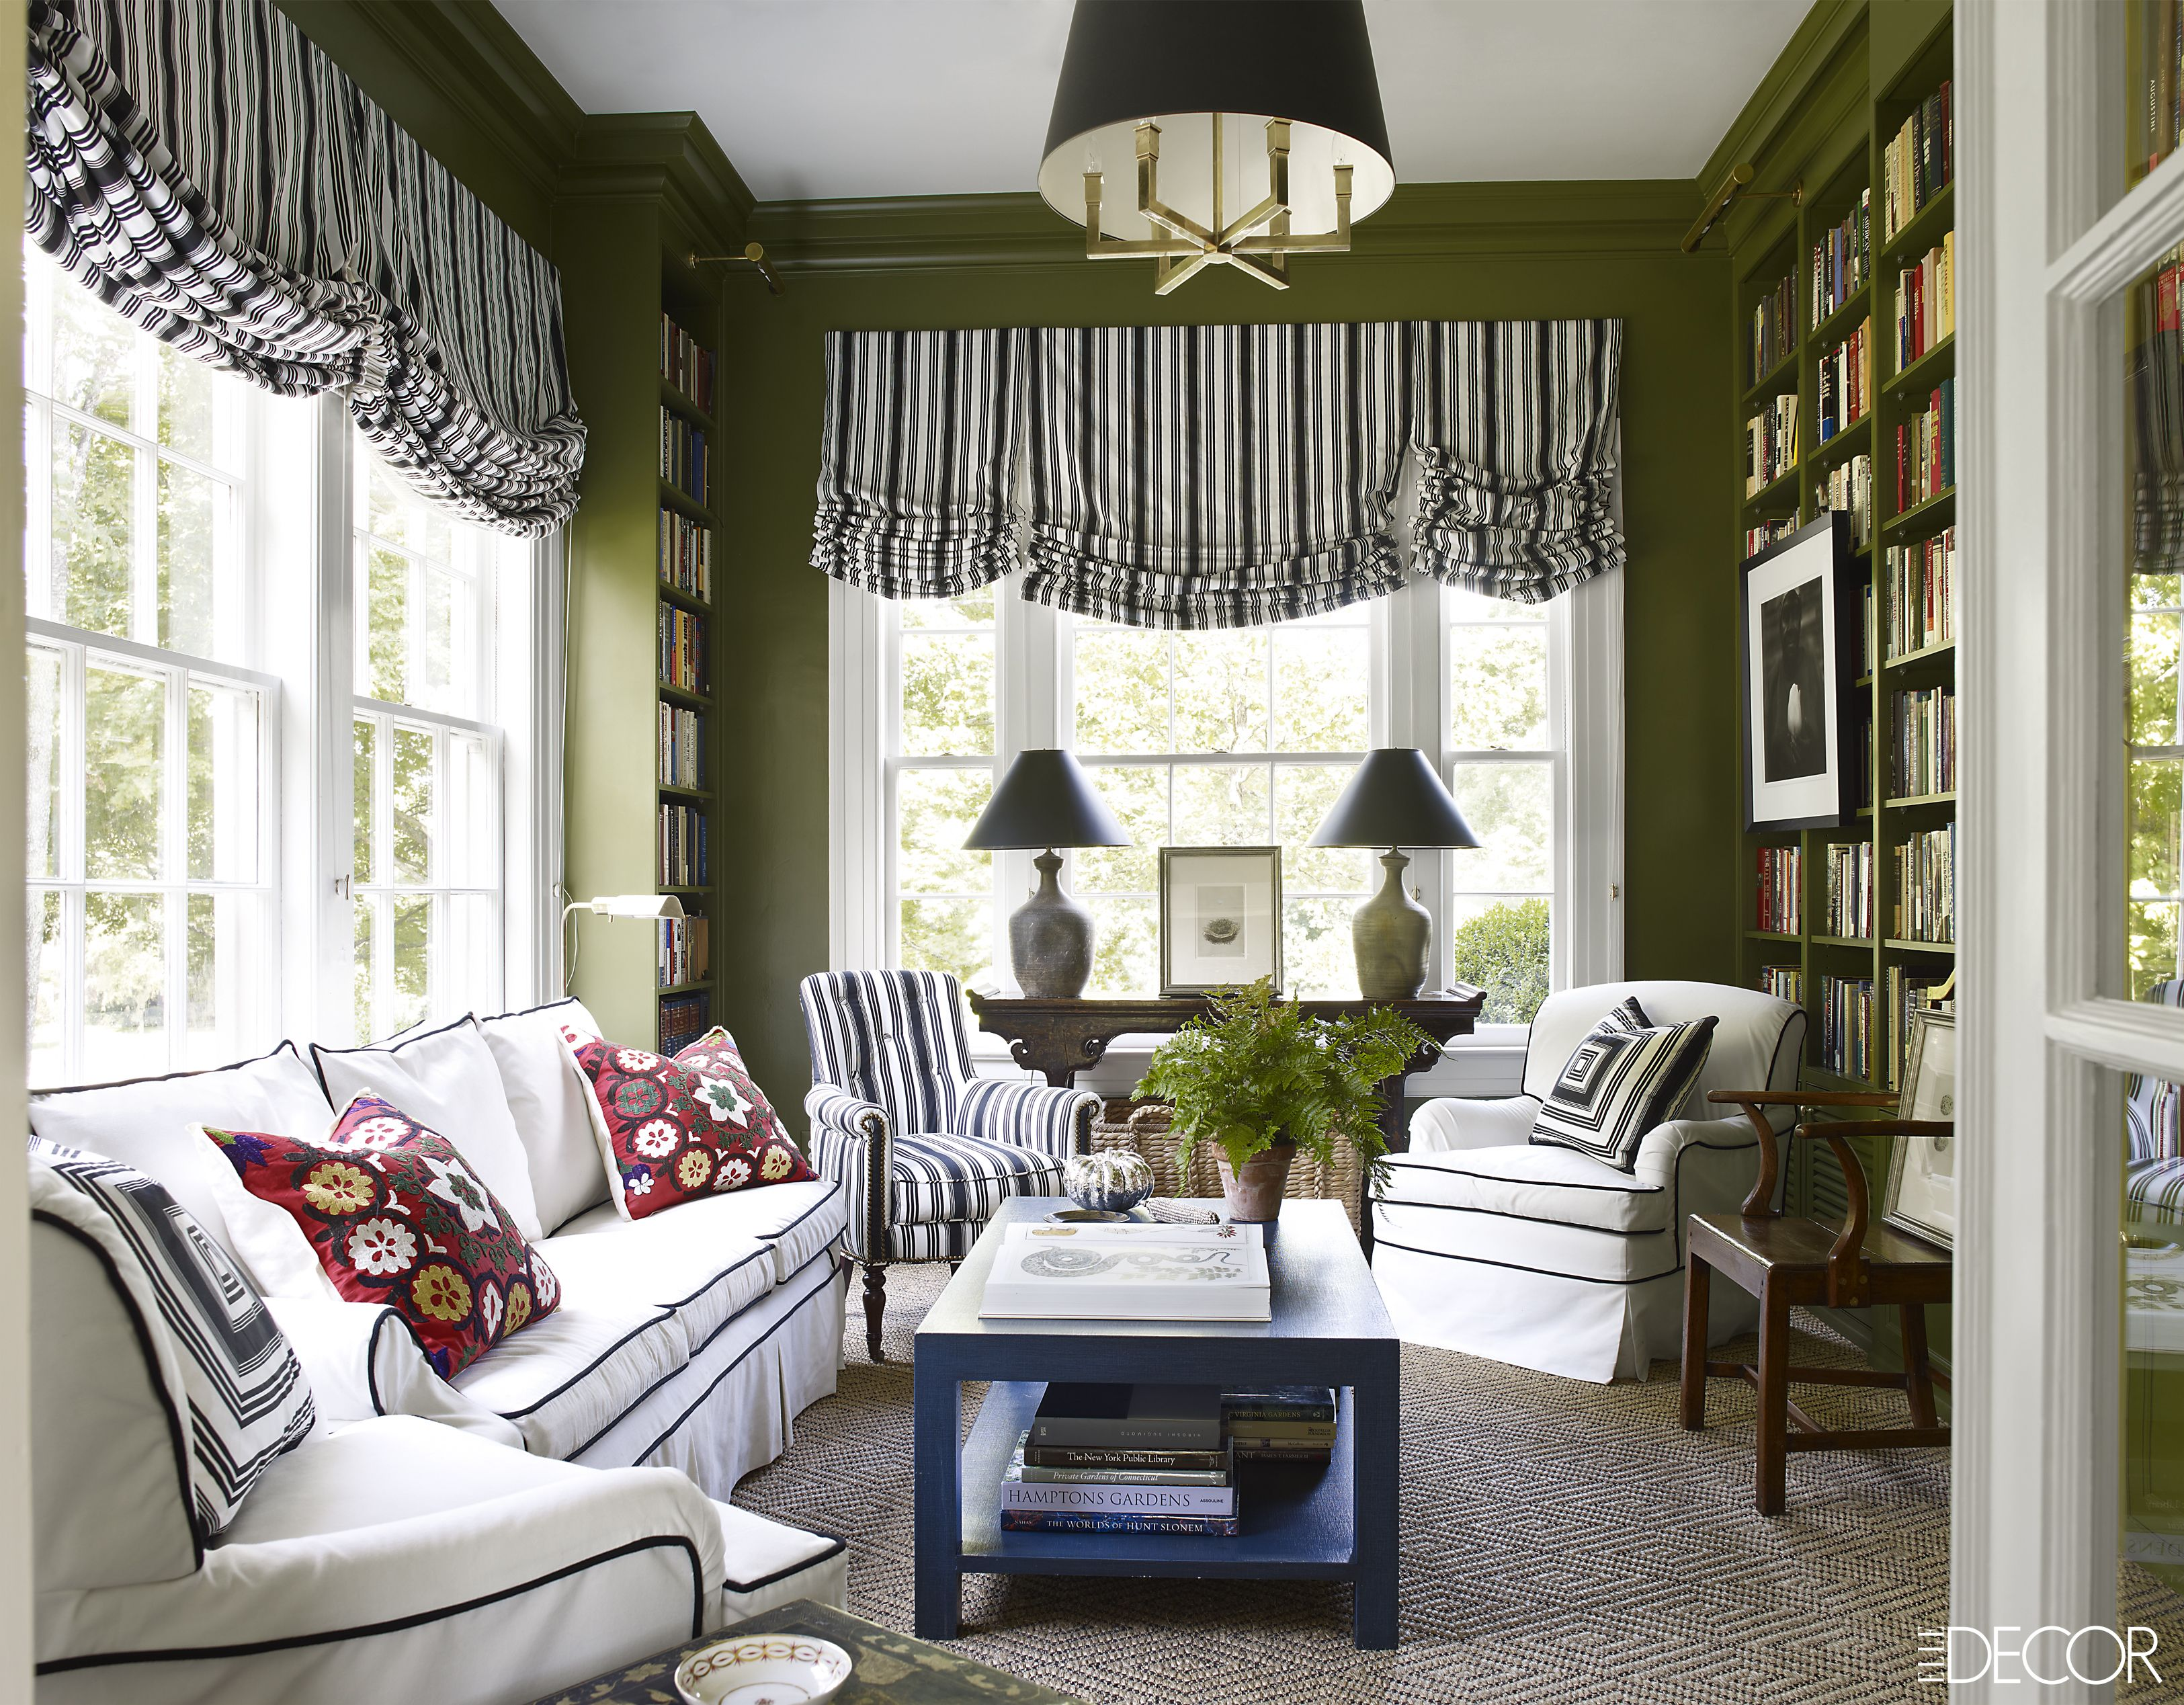 Best Green Rooms - Green Paint Colors And Decor Ideas